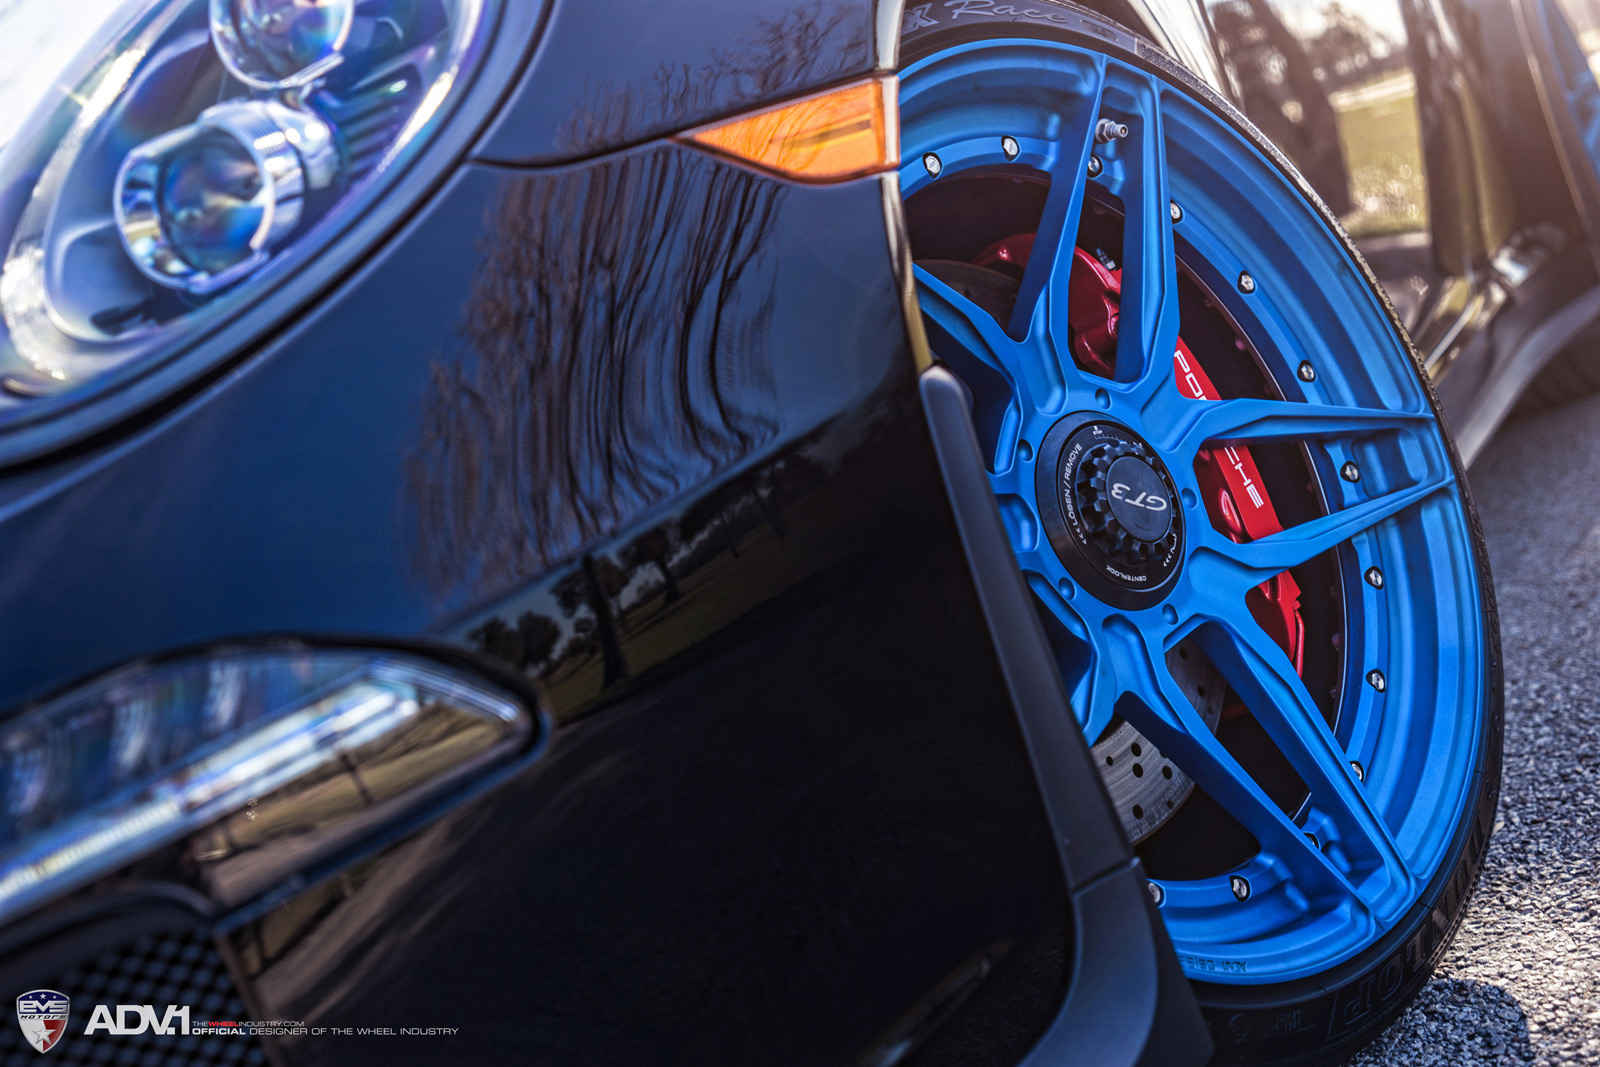 adv1-porsche-991-gt3-adv05s-mv2-sl-custom-forged-2-piece-concave-wheels-blue-07